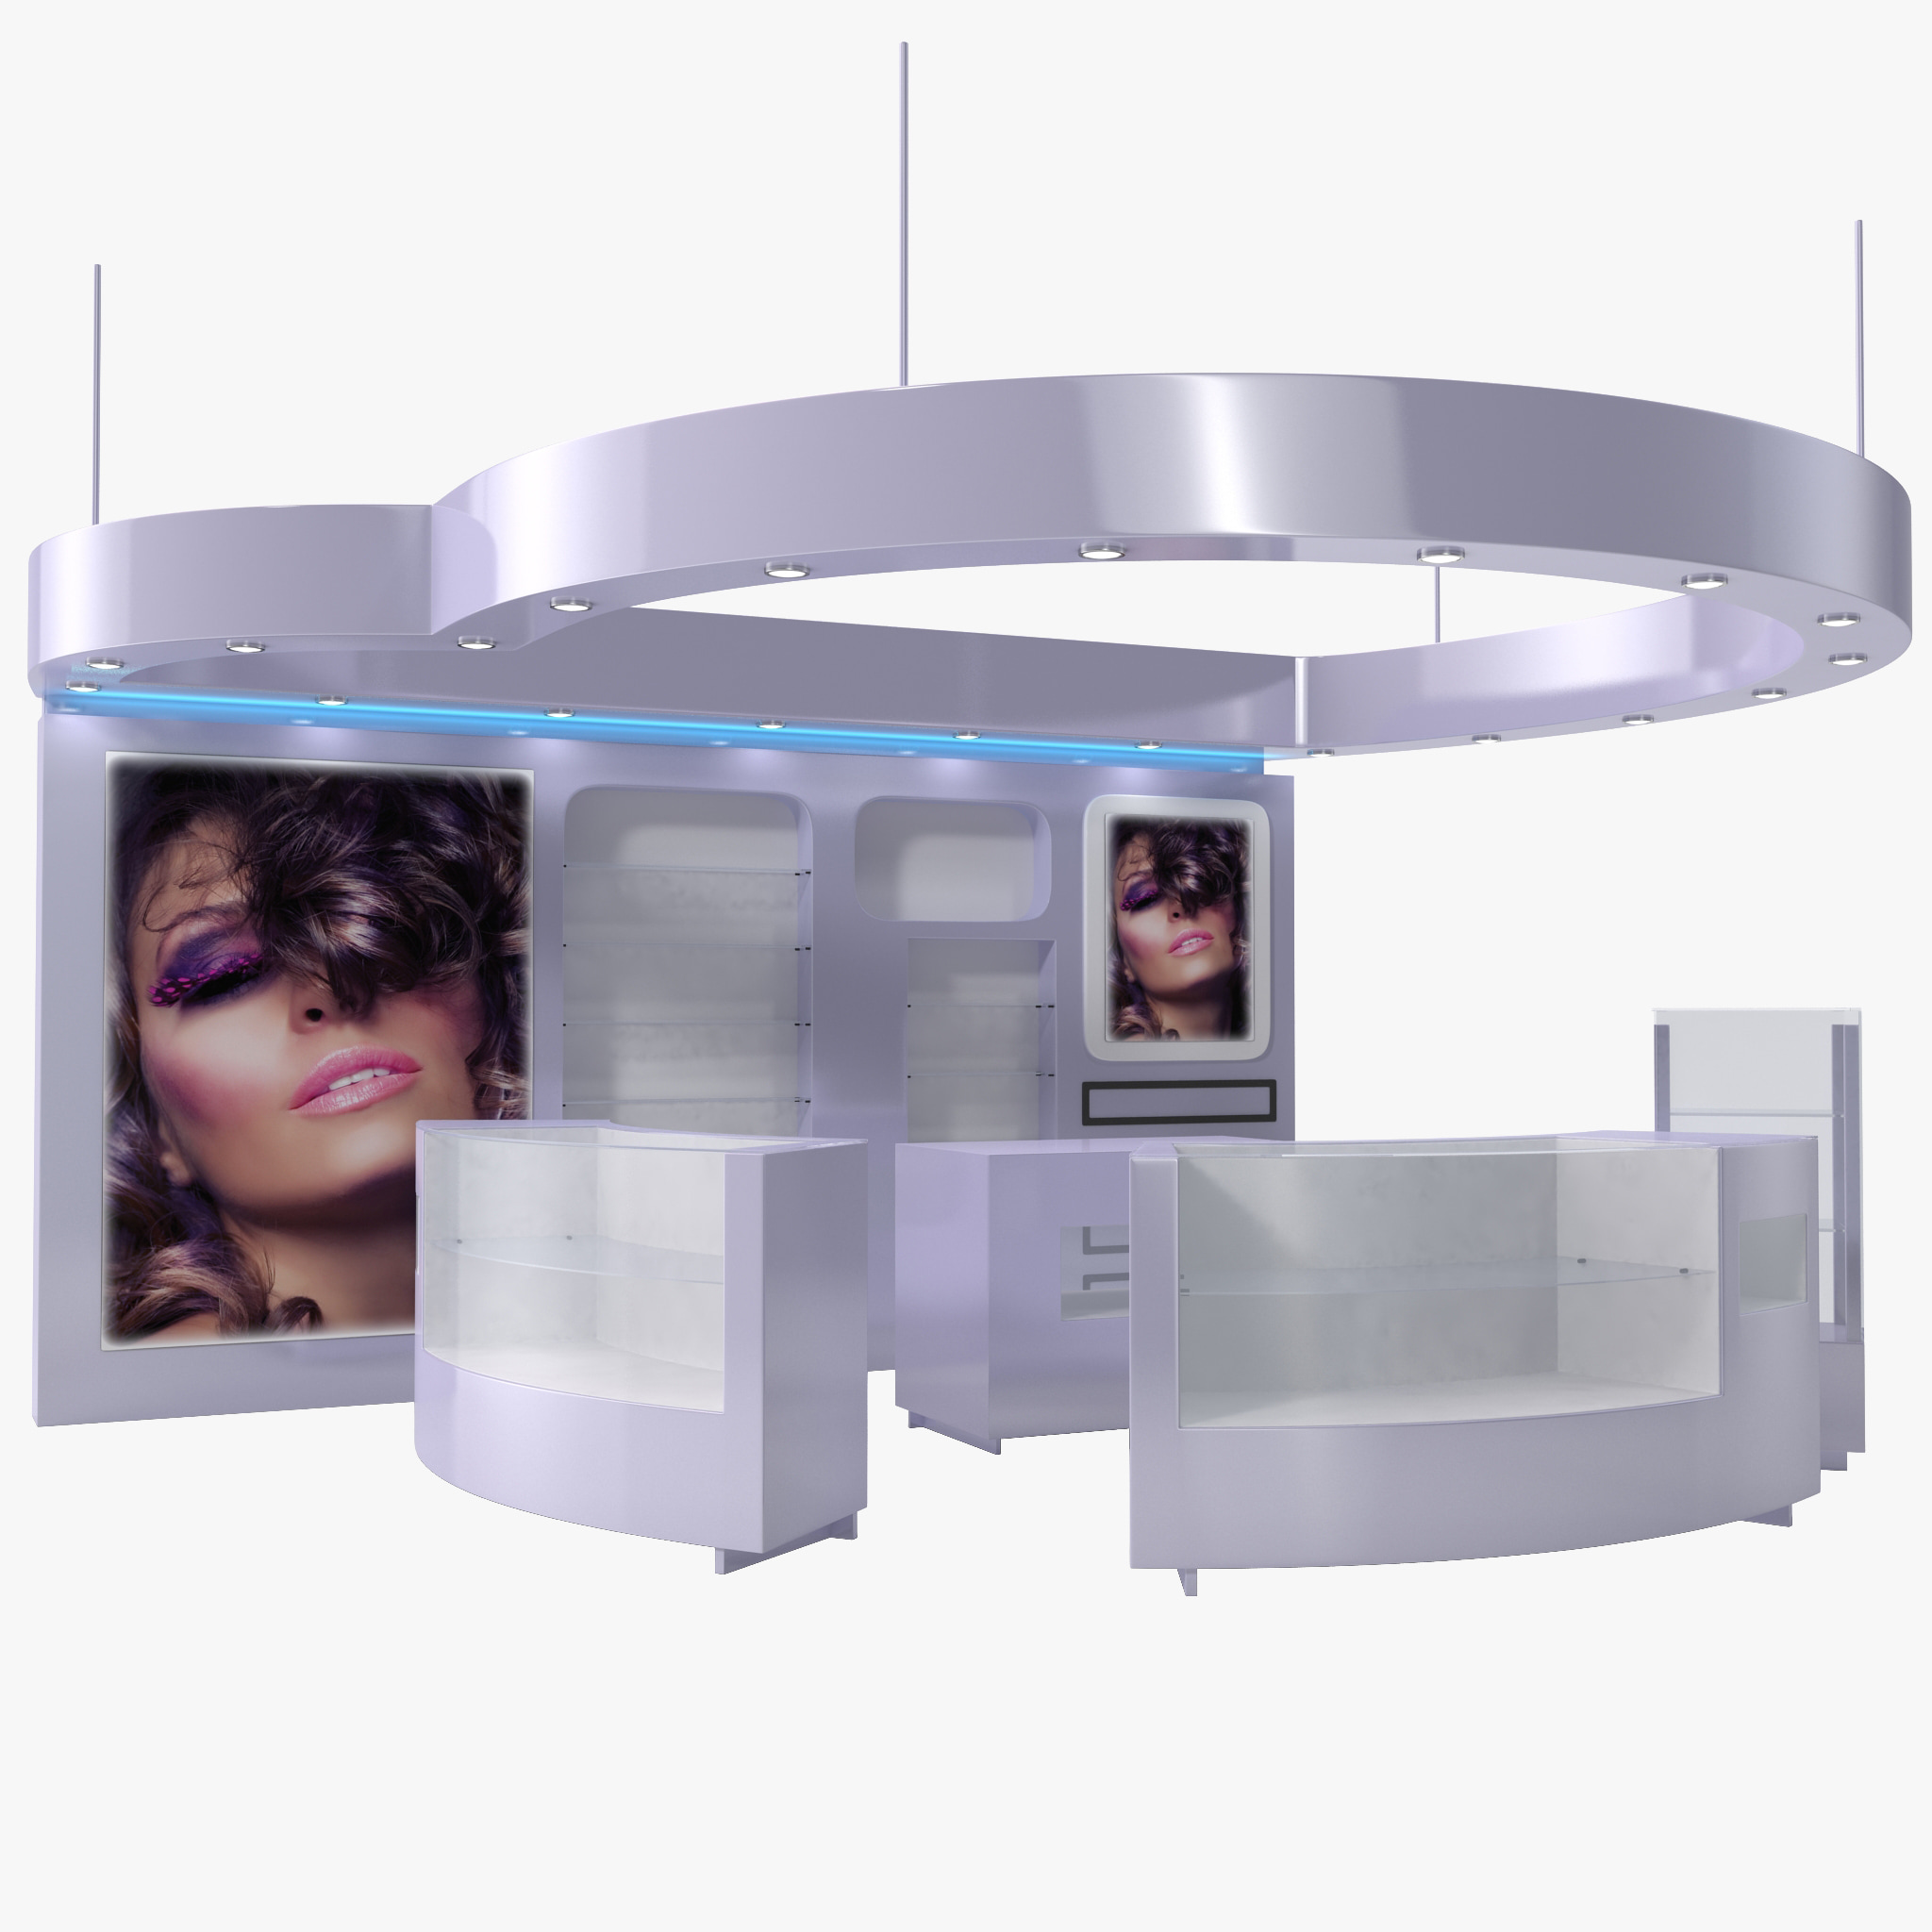 3ds cosmetics display kiosk